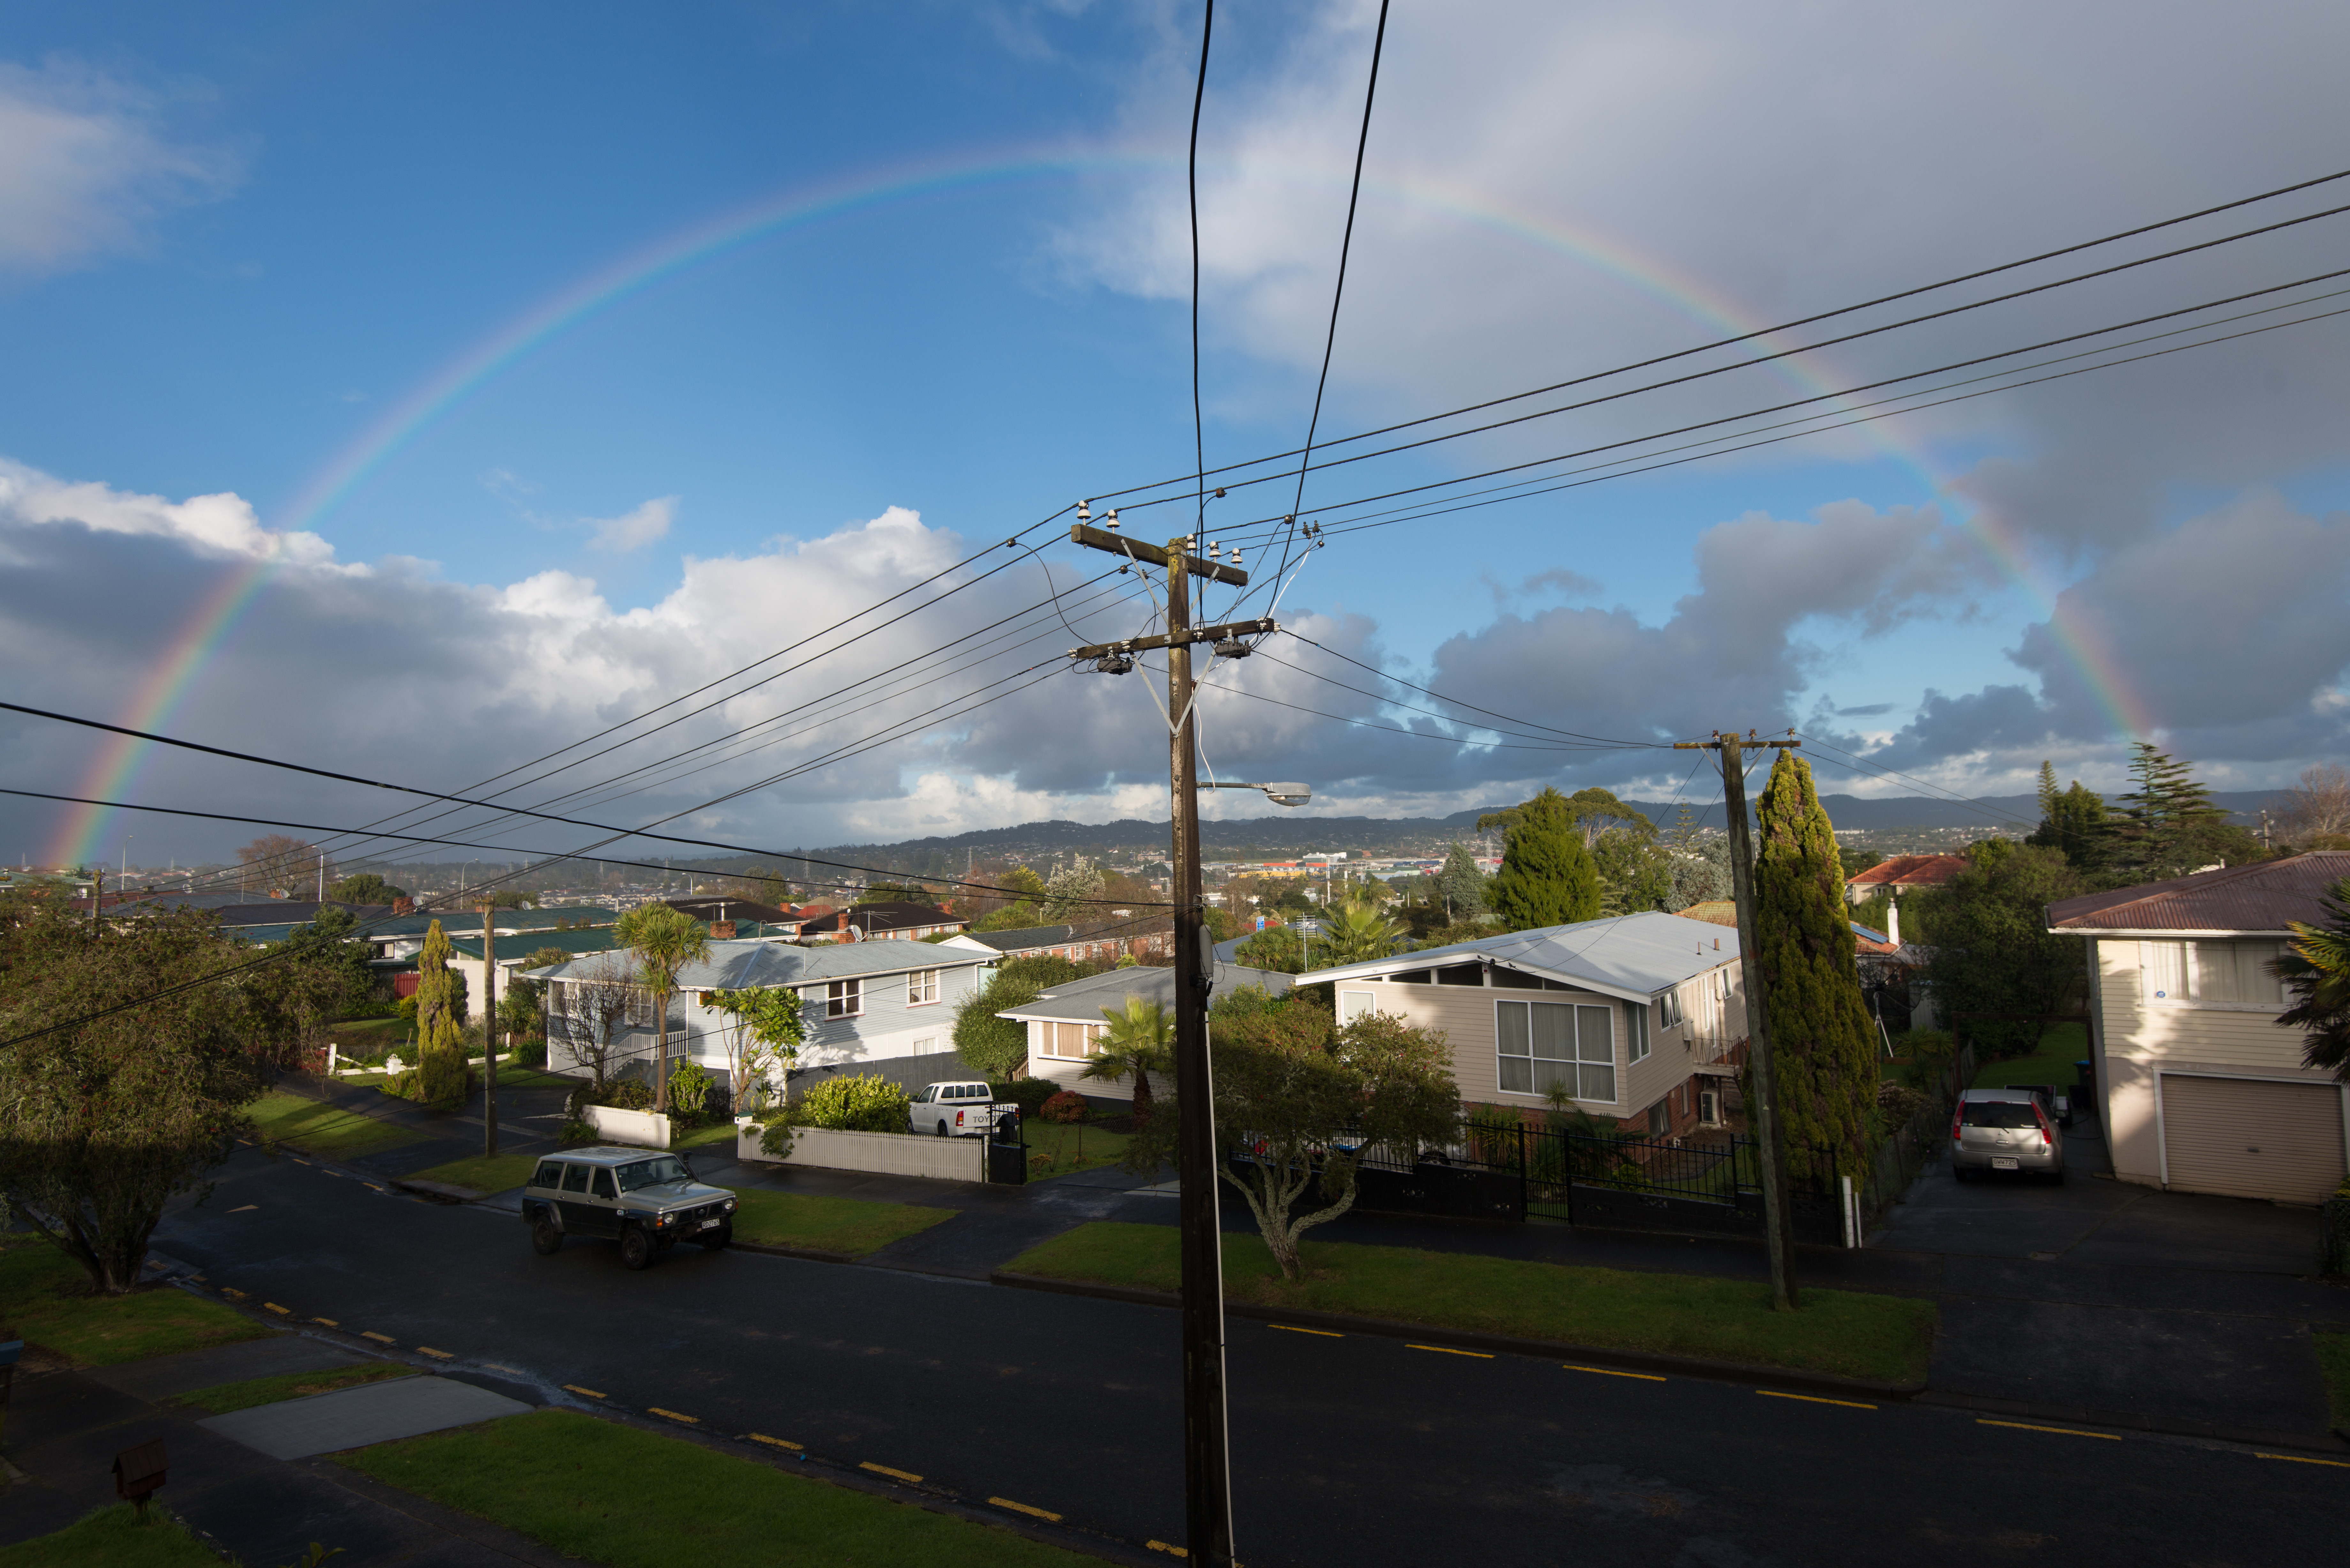 Rainbow in residential neighborhood in Avondale, Auckland, Vehicle, Power line, Outdoor, Cable, HQ Photo